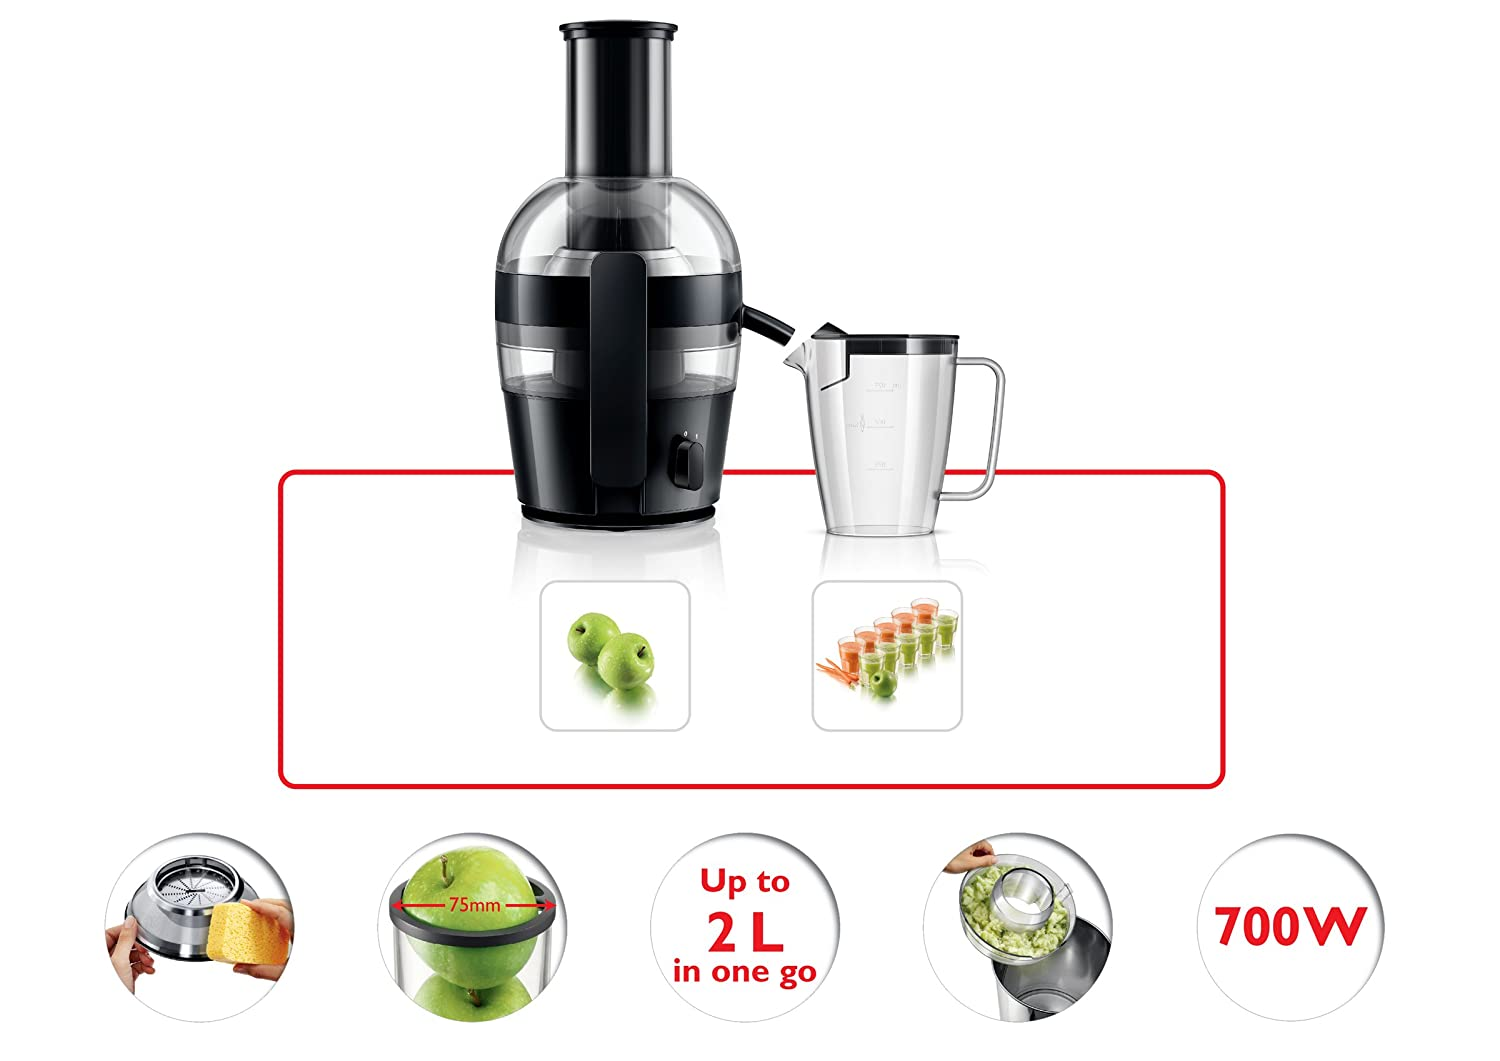 Philips Slow Juicer Hr1855 : Philips HR1855/01 viva Collection Juicer, 2 Litre, 700 Watt eBay